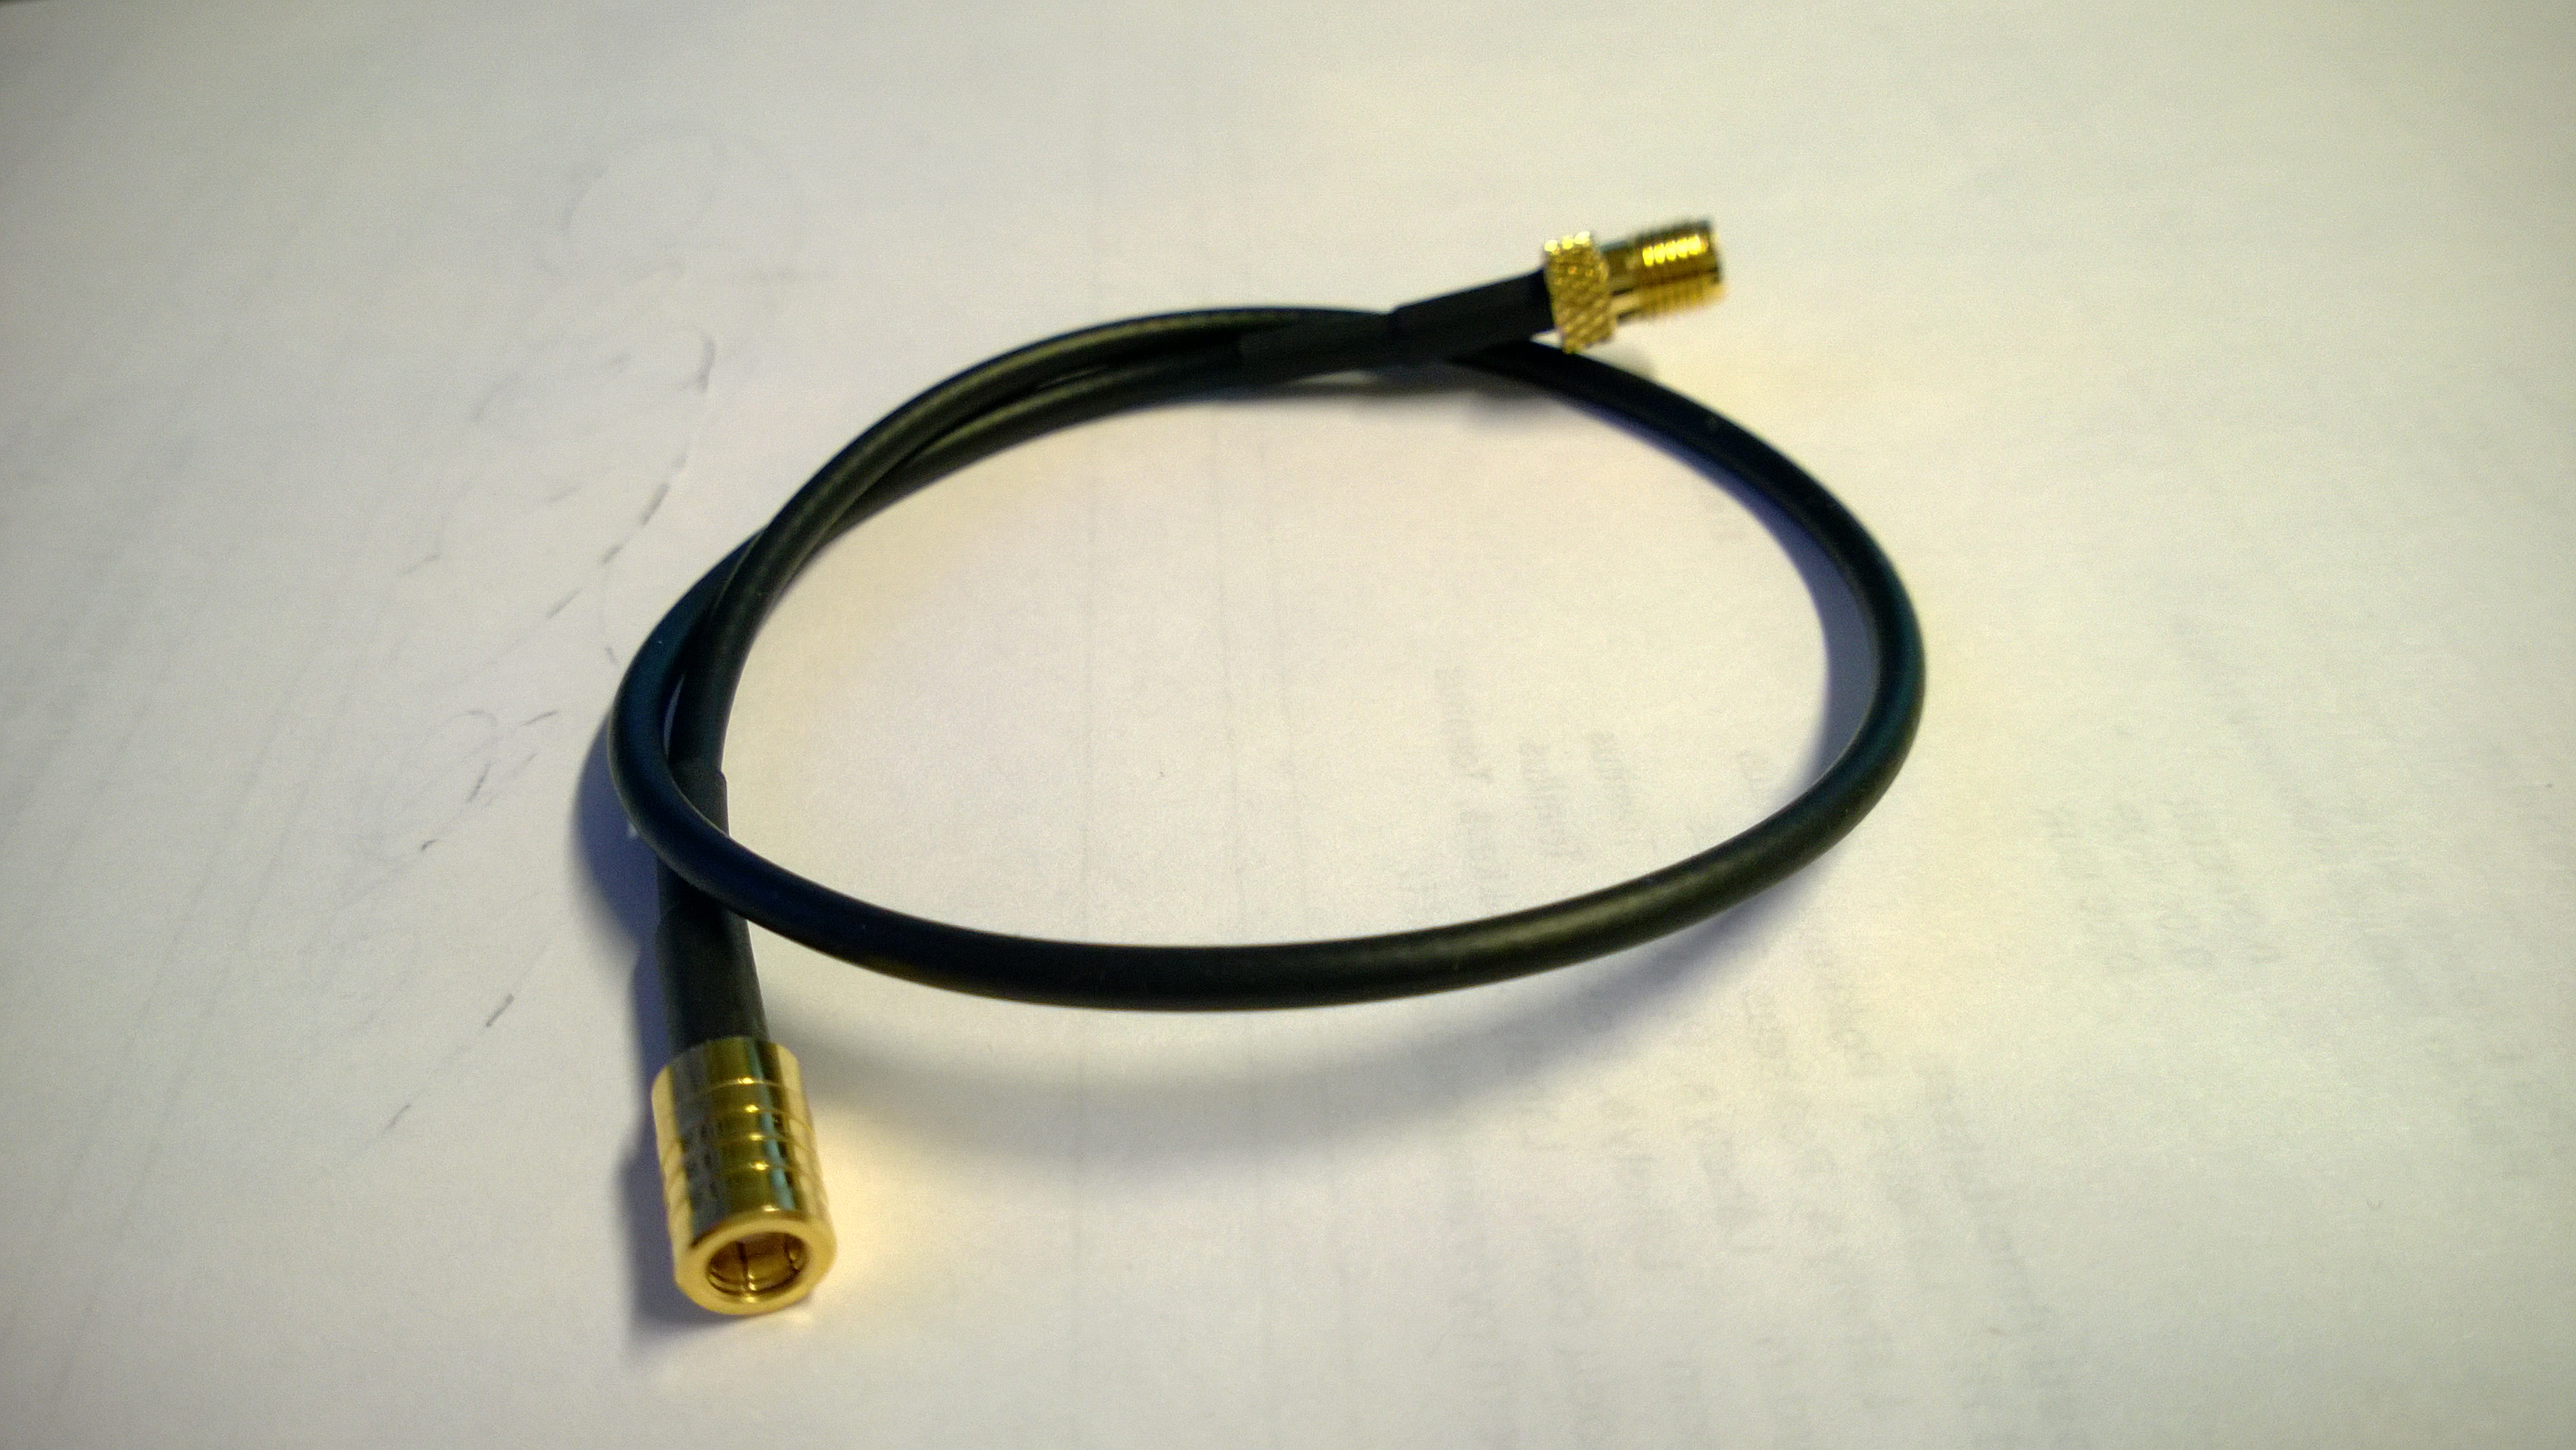 SMB male adapter cable